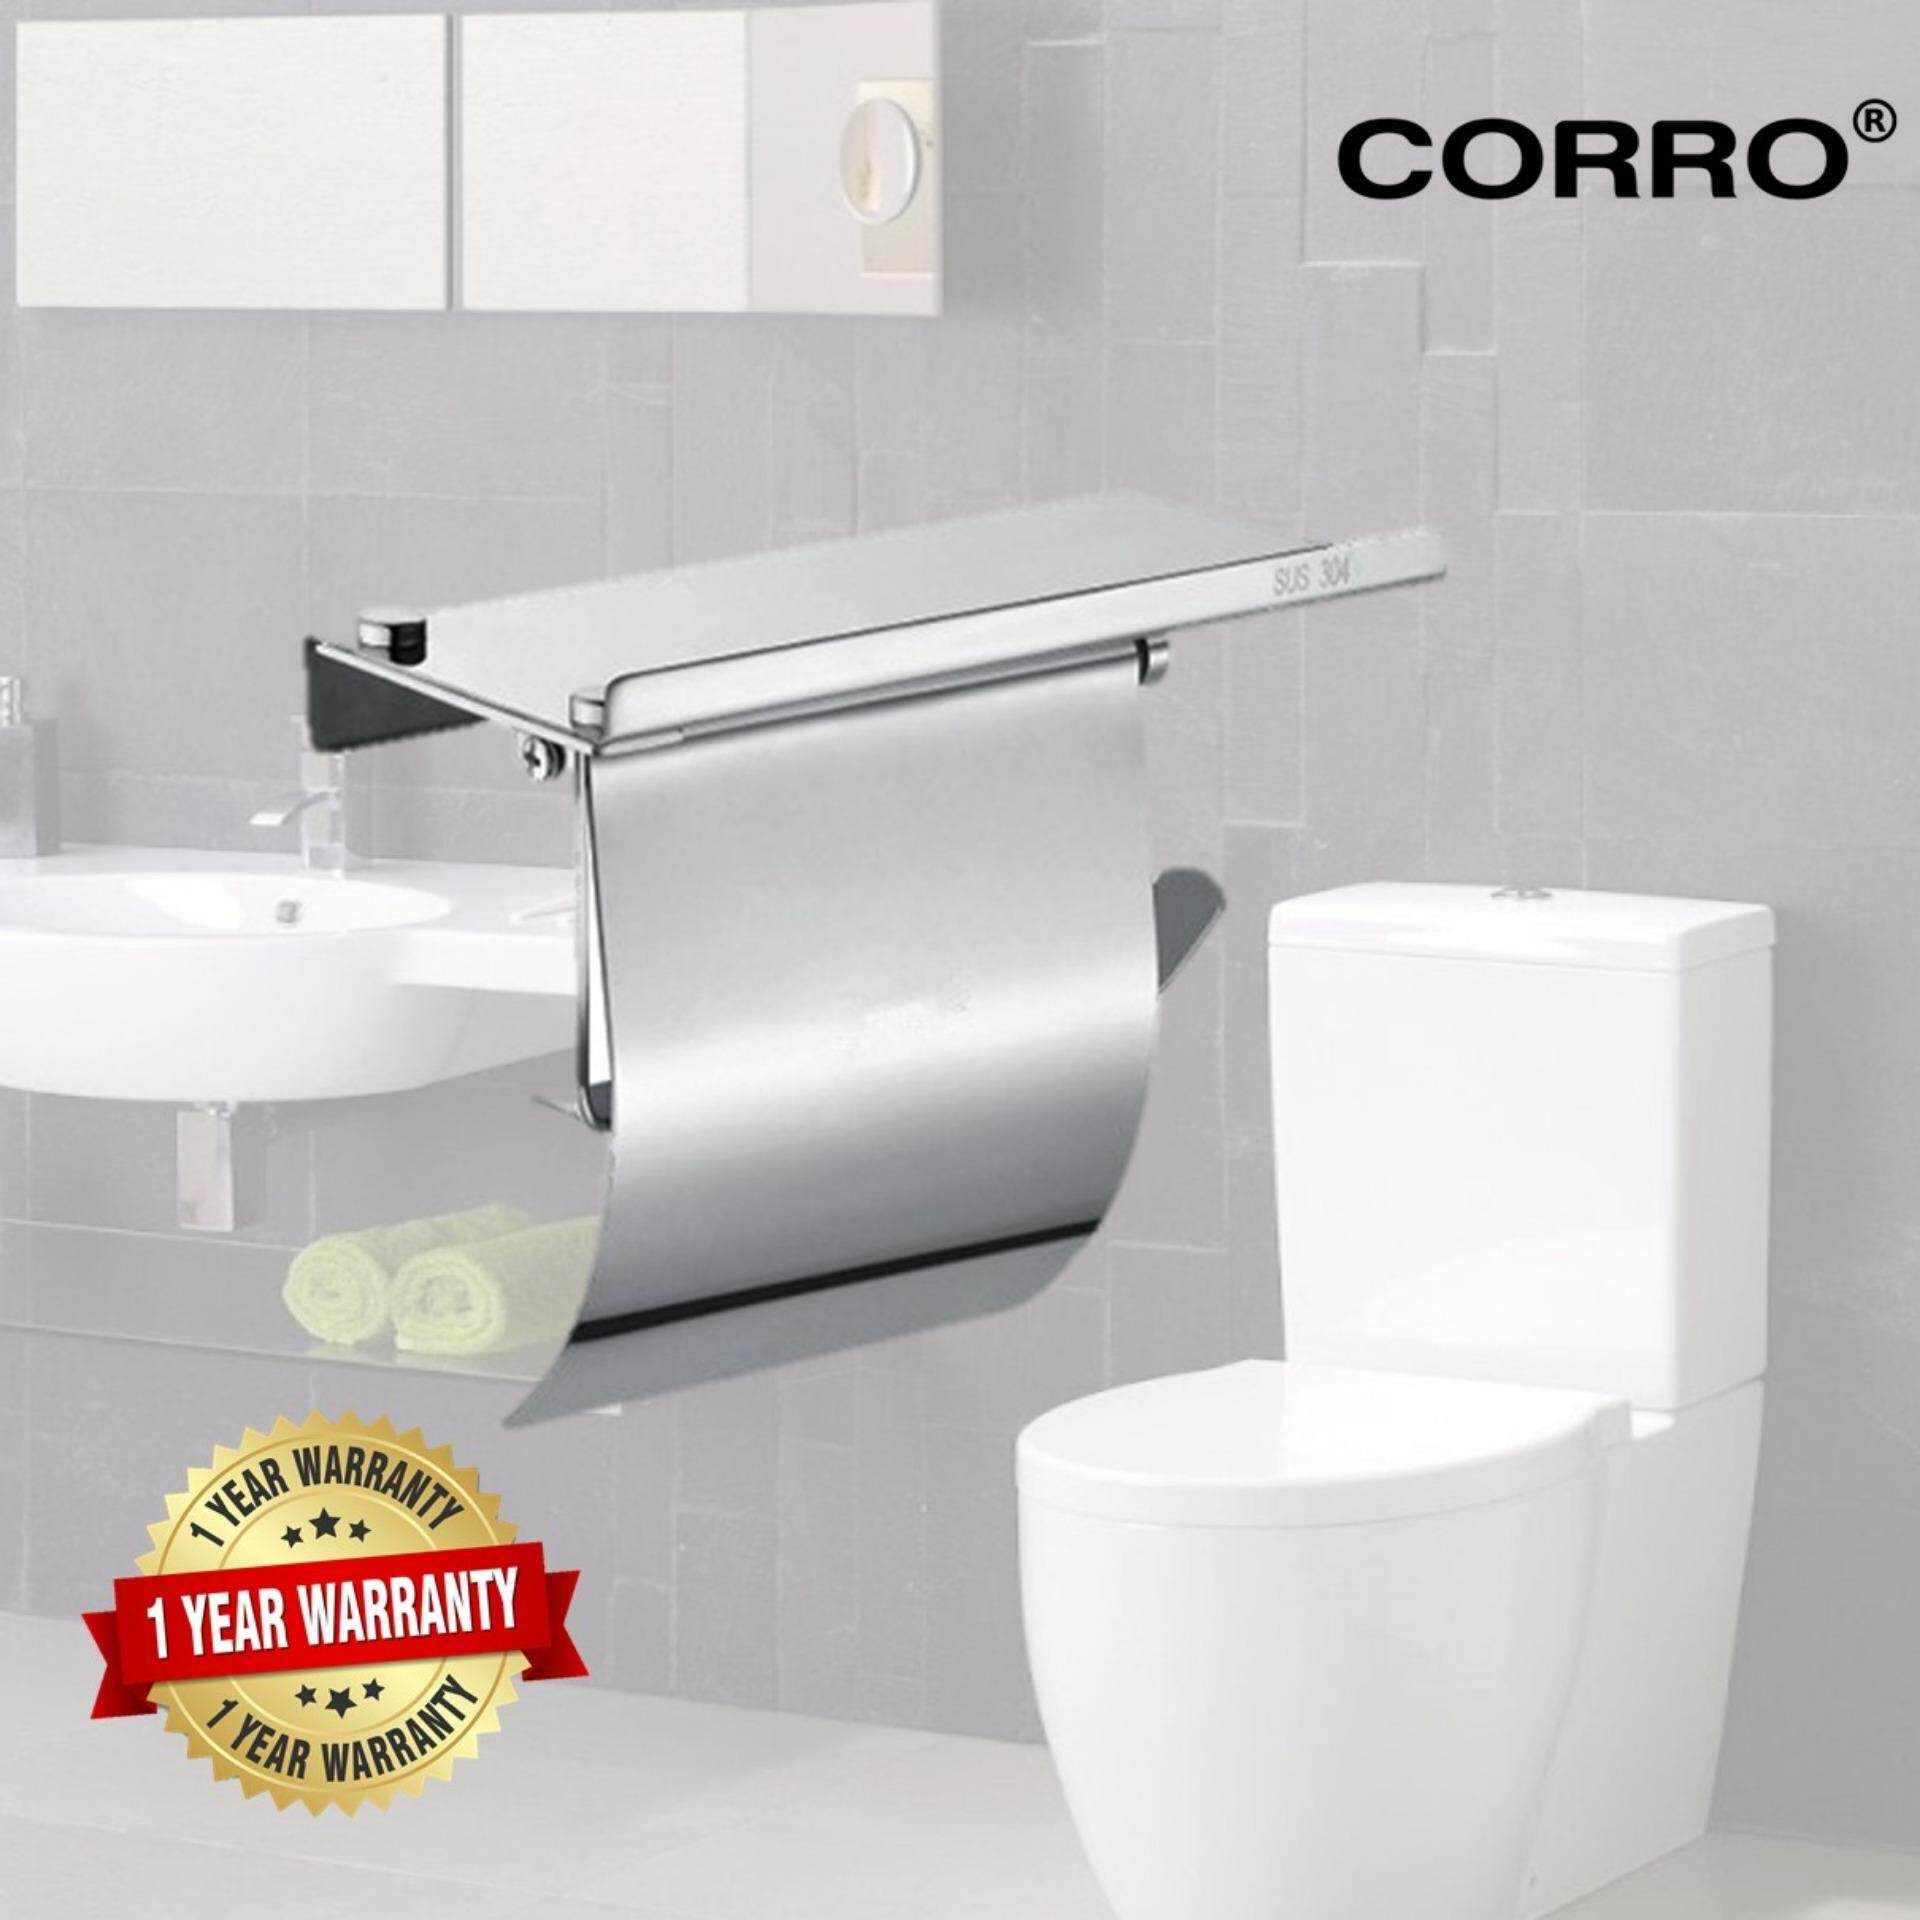 CORRO High Quality SUS304 Stainless Steel Paper Holder